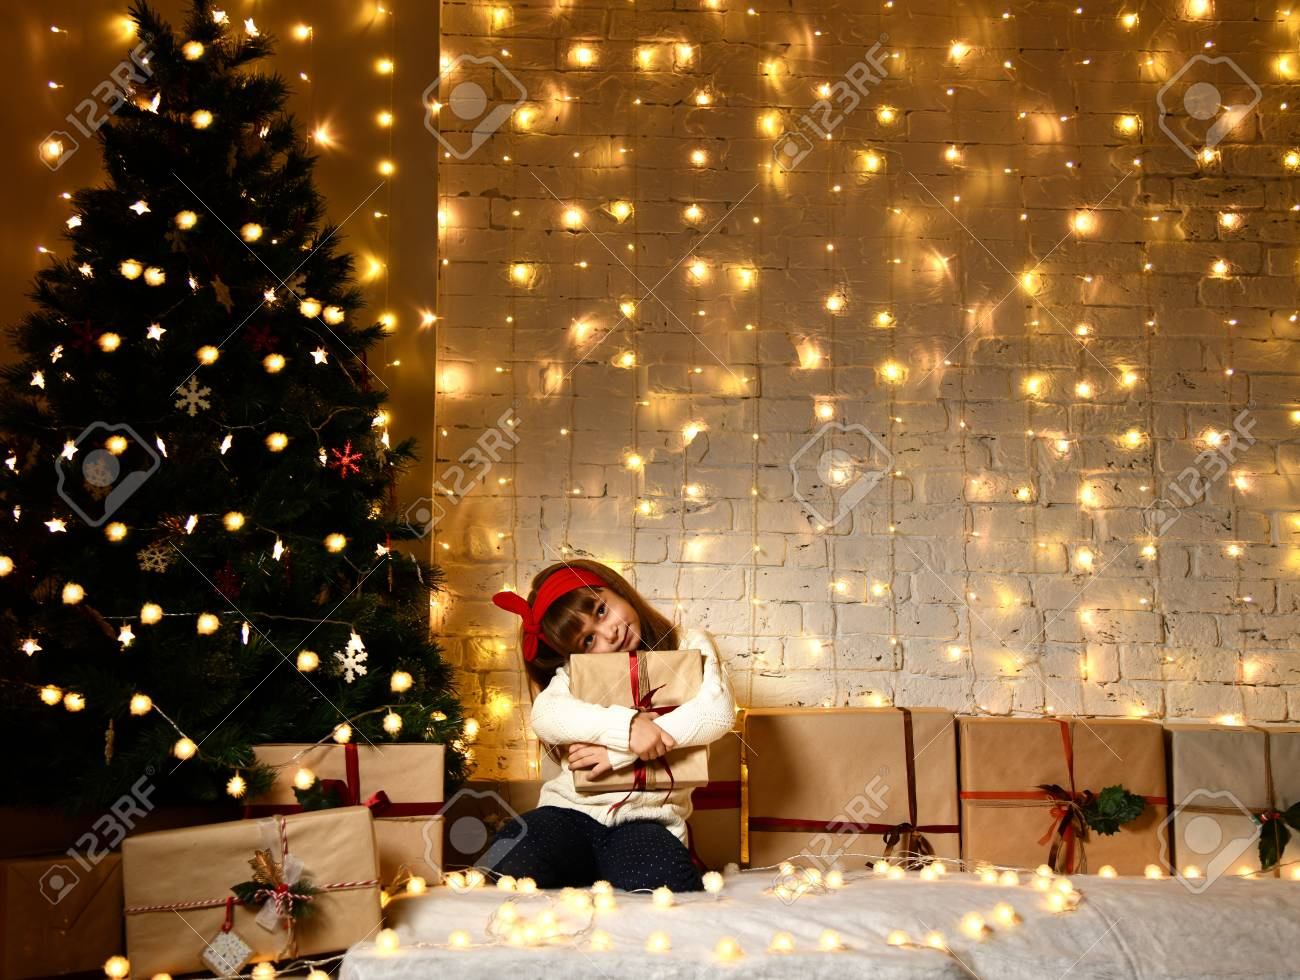 Asian Child Baby Girl Kid Sitting Under Decorated Gold Christmas